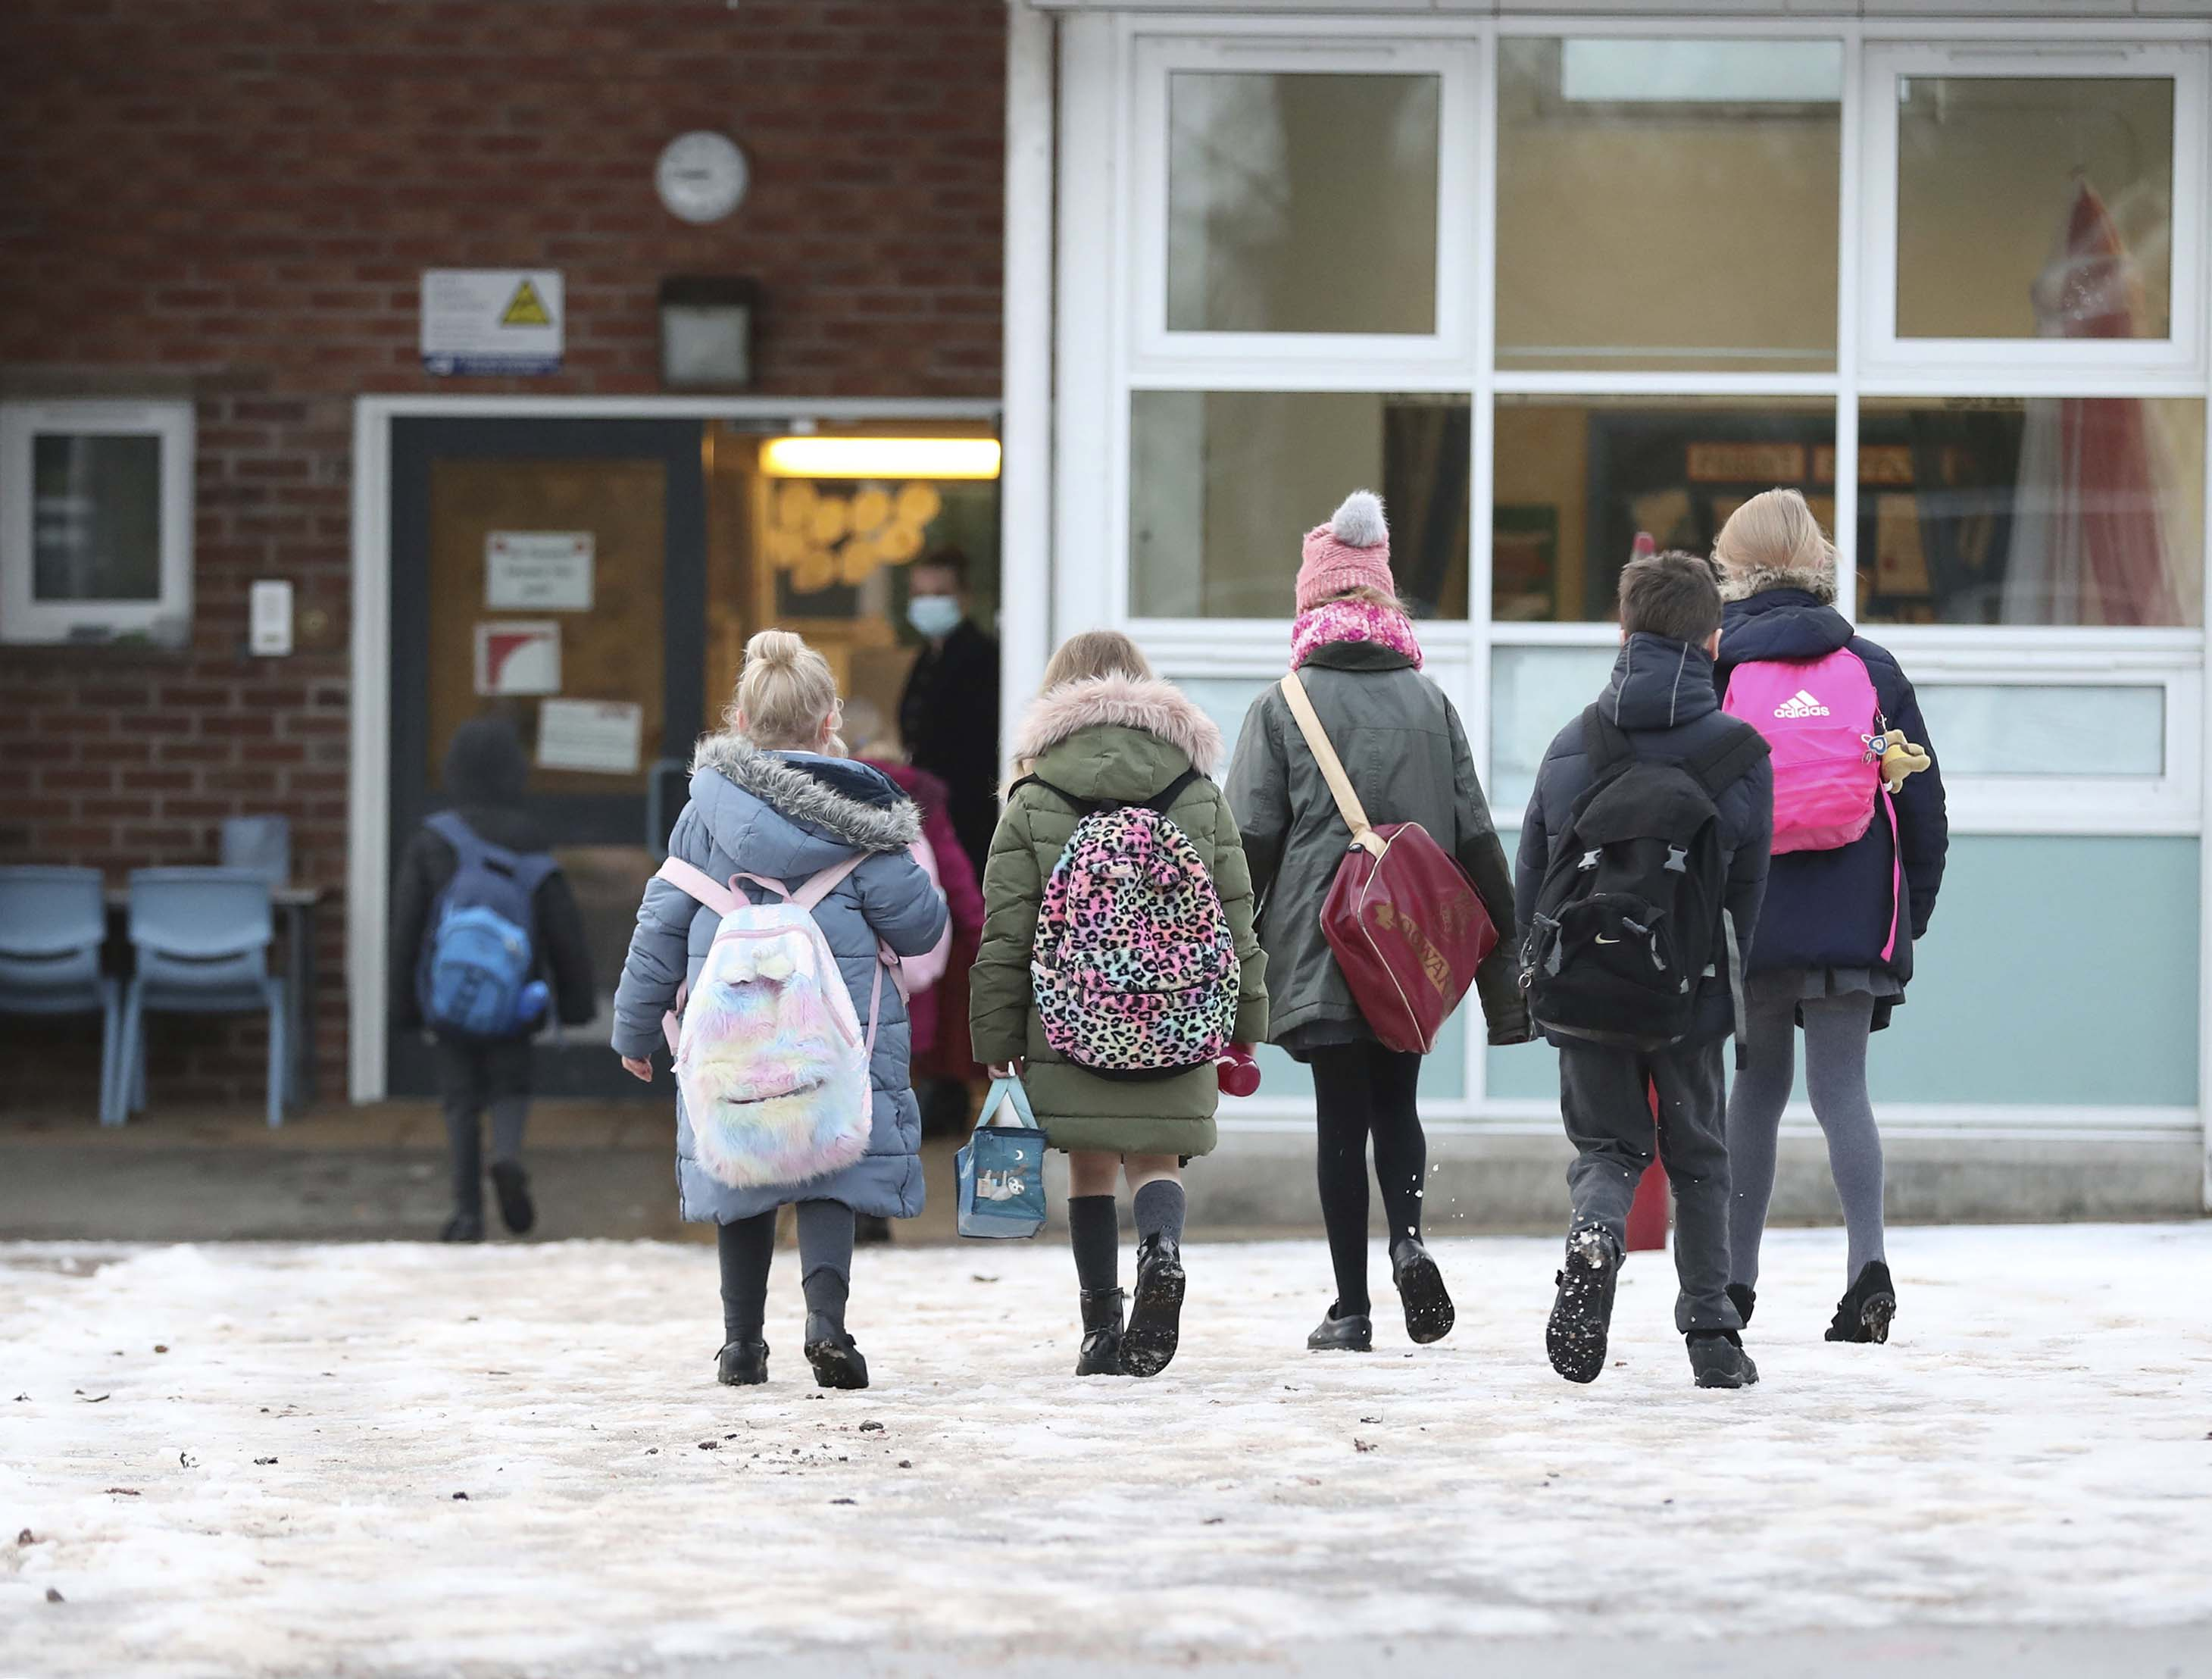 Pupils arrive at Manor Park School and Nursery in Knutsford, England, as some schools reopen on January 4 following the holiday break.